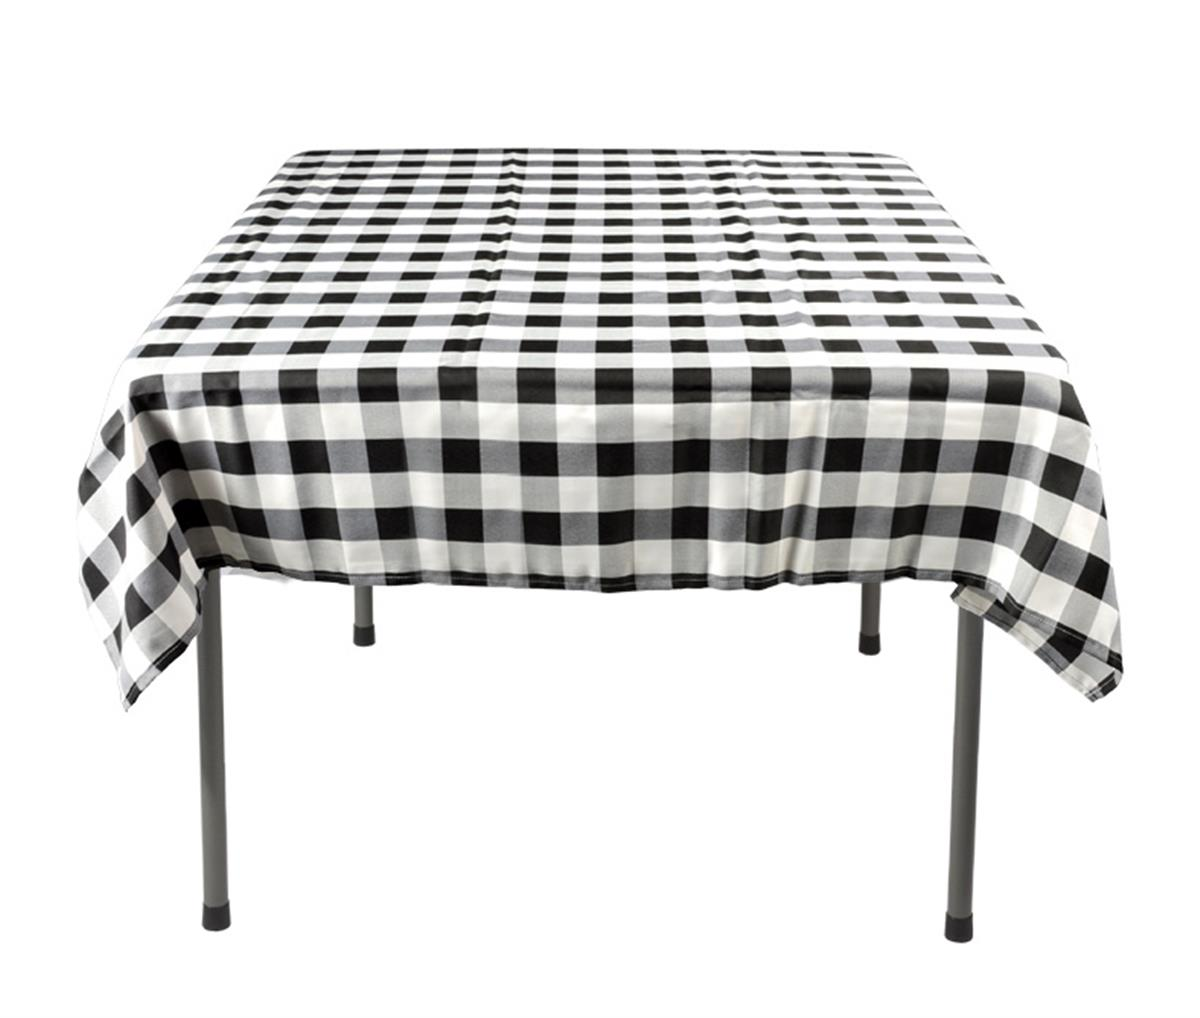 square table cloths black white checkered pattern. Black Bedroom Furniture Sets. Home Design Ideas